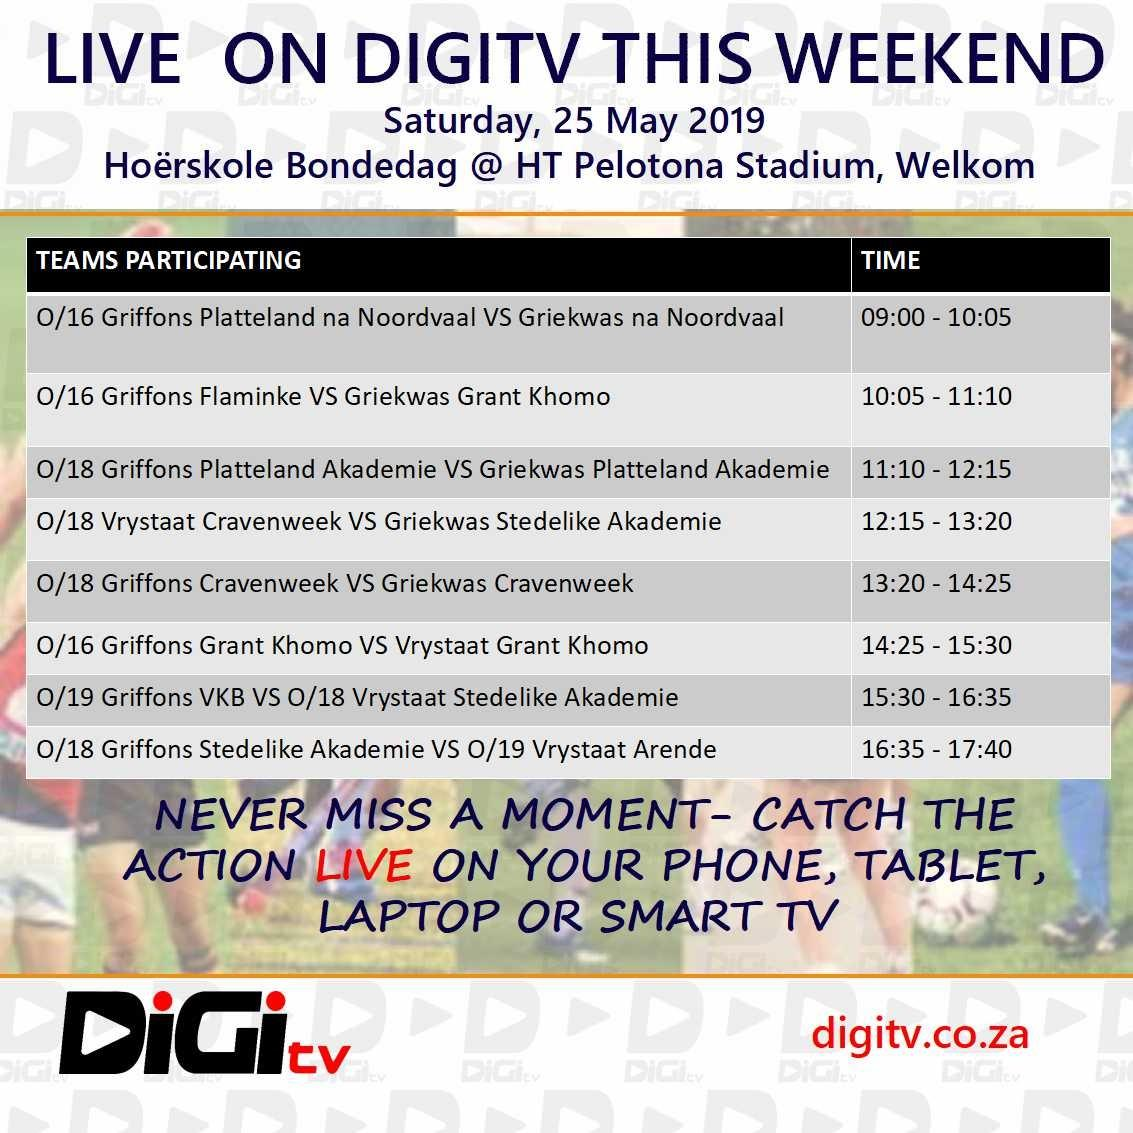 D7QWV02XkAAFkGN School of Rugby | Graeme Rugby Day set for explosive action - School of Rugby